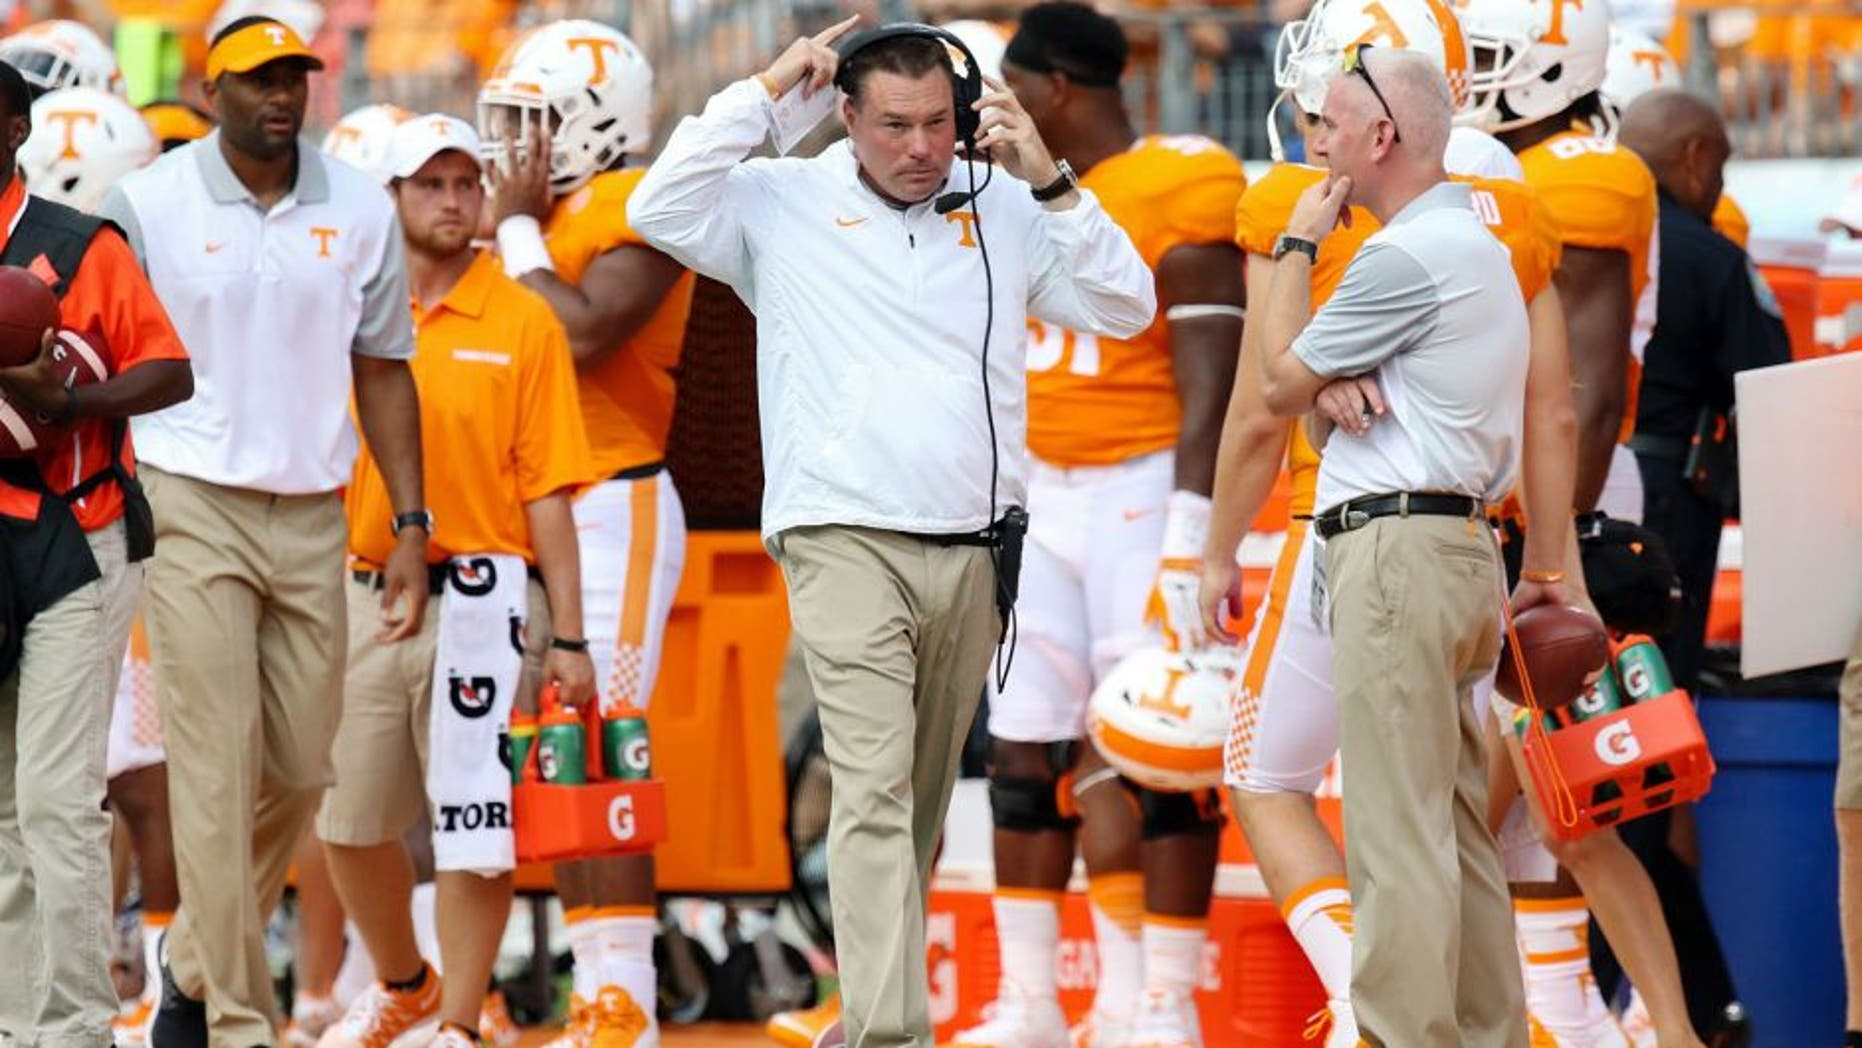 Sep 5, 2015; Nashville, TN, USA; Tennessee Volunteers head coach Butch Jones during the first quarter of the game against the Bowling Green Falcons at Nissan Stadium. Mandatory Credit: Randy Sartin-USA TODAY Sports